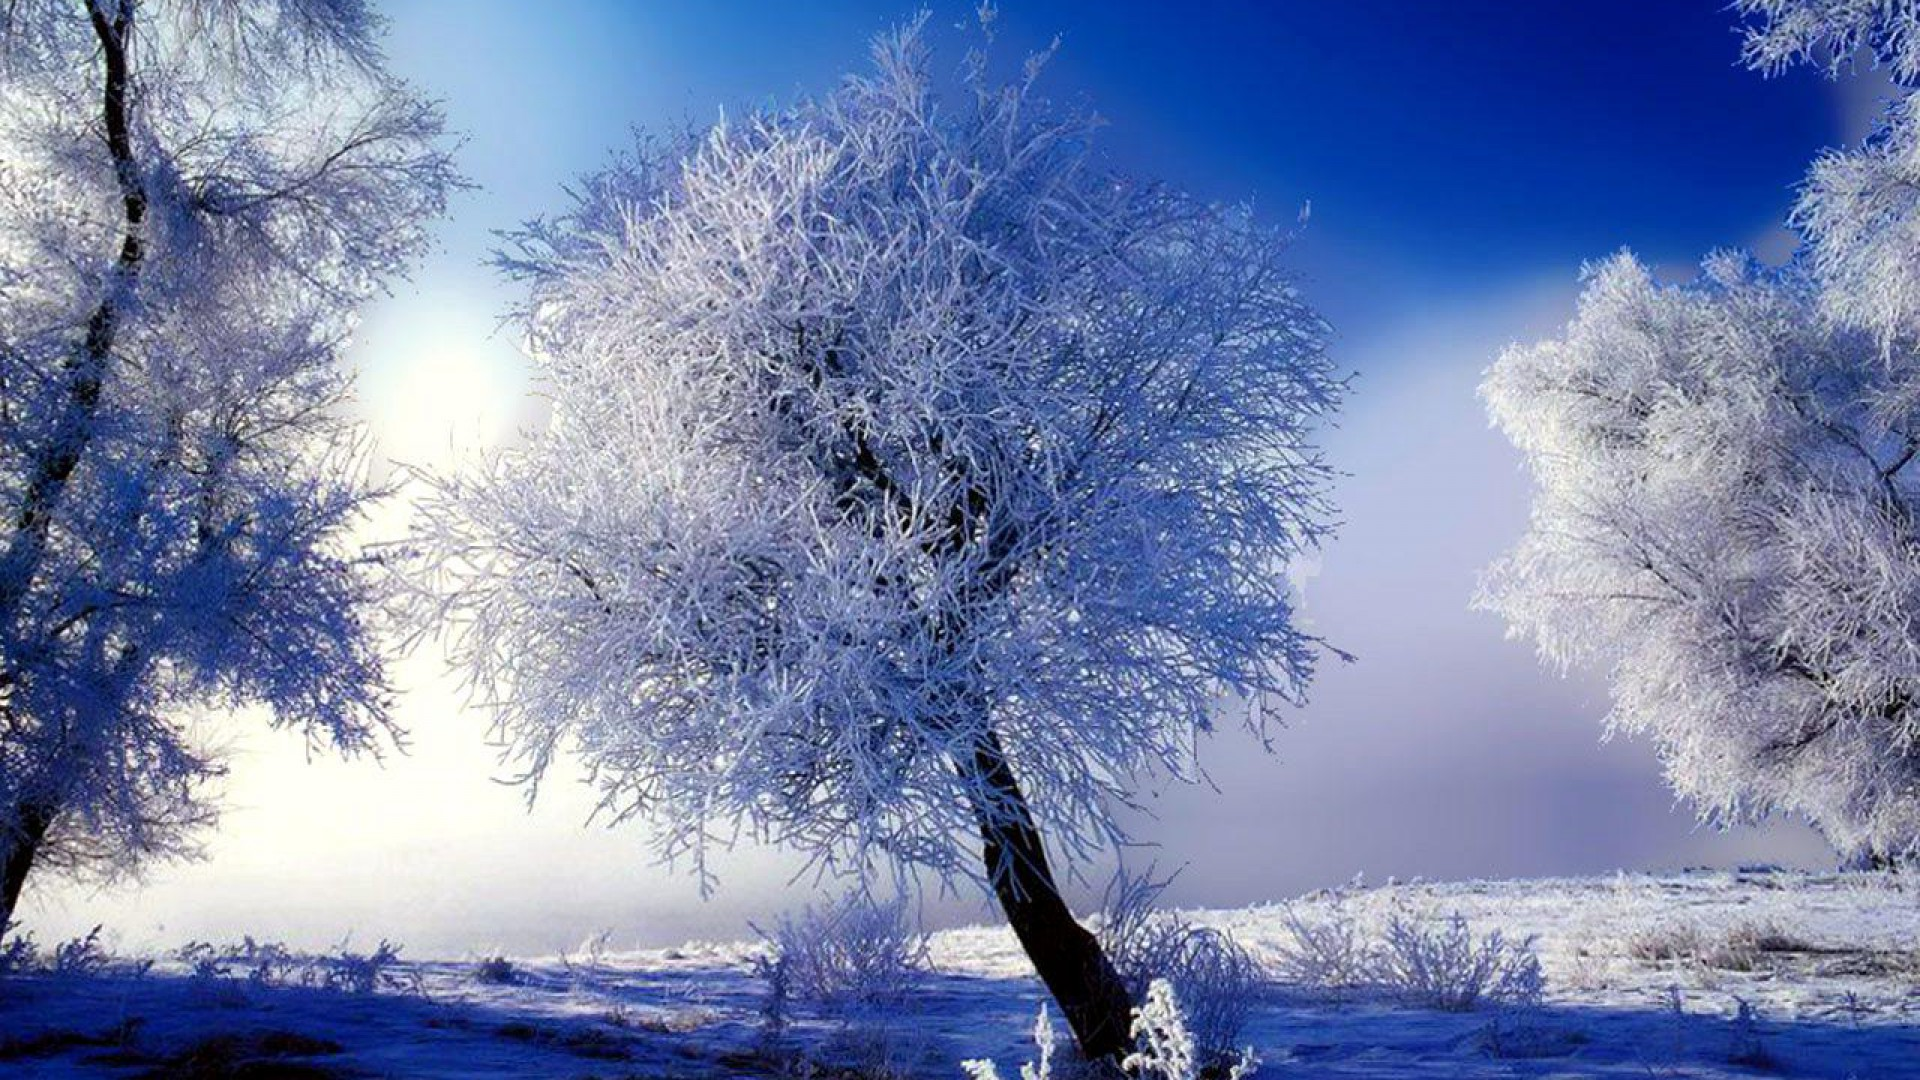 Winter Scene Wallpaper 6537 Wallpapers13com 1920x1080